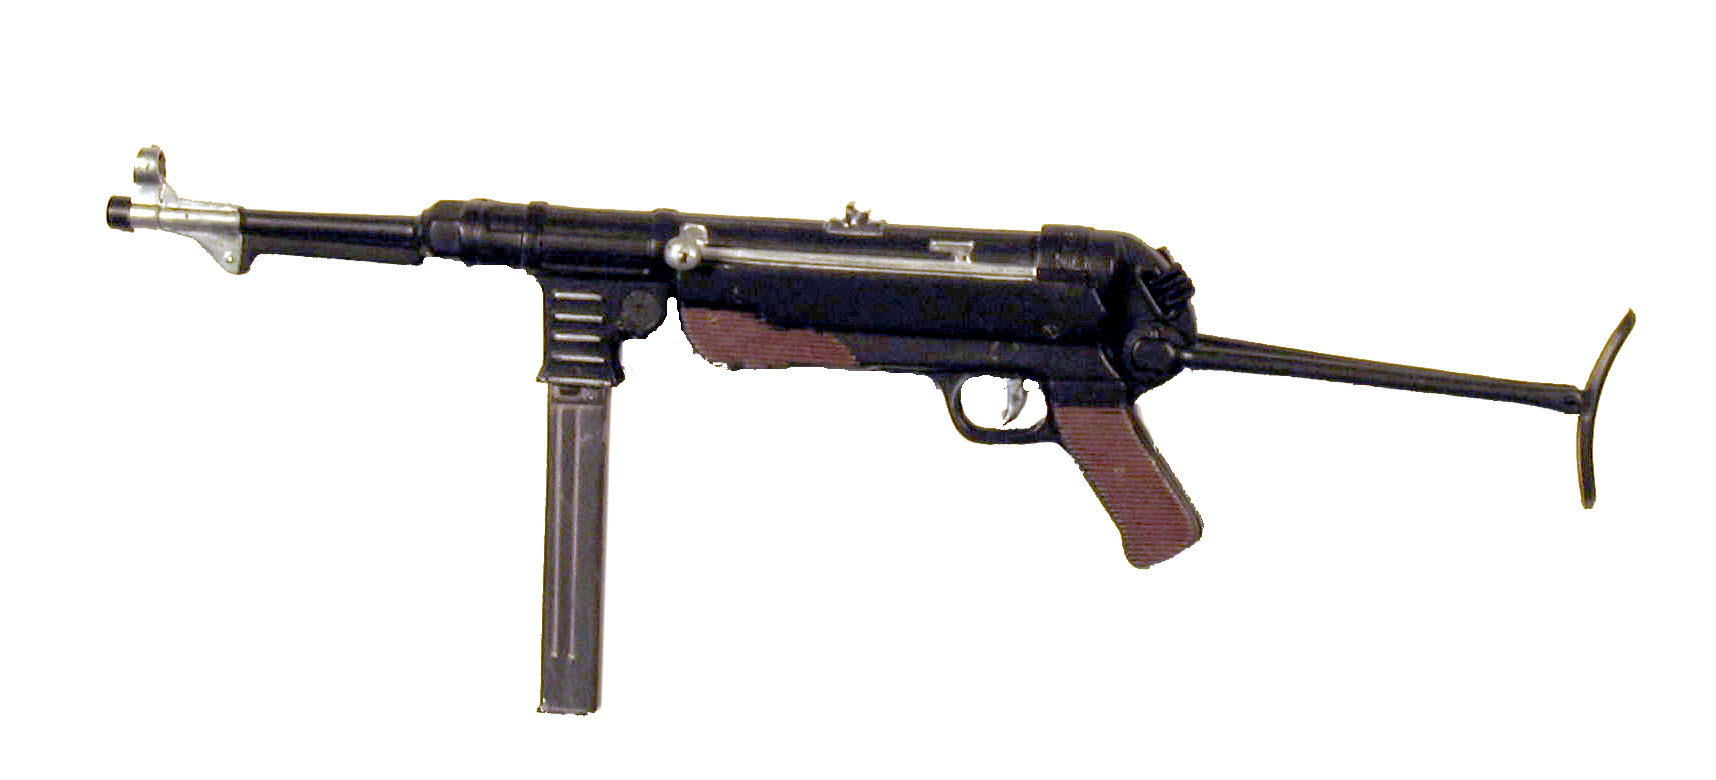 Geramn MP-40 sub machine gun - Click Image to Close